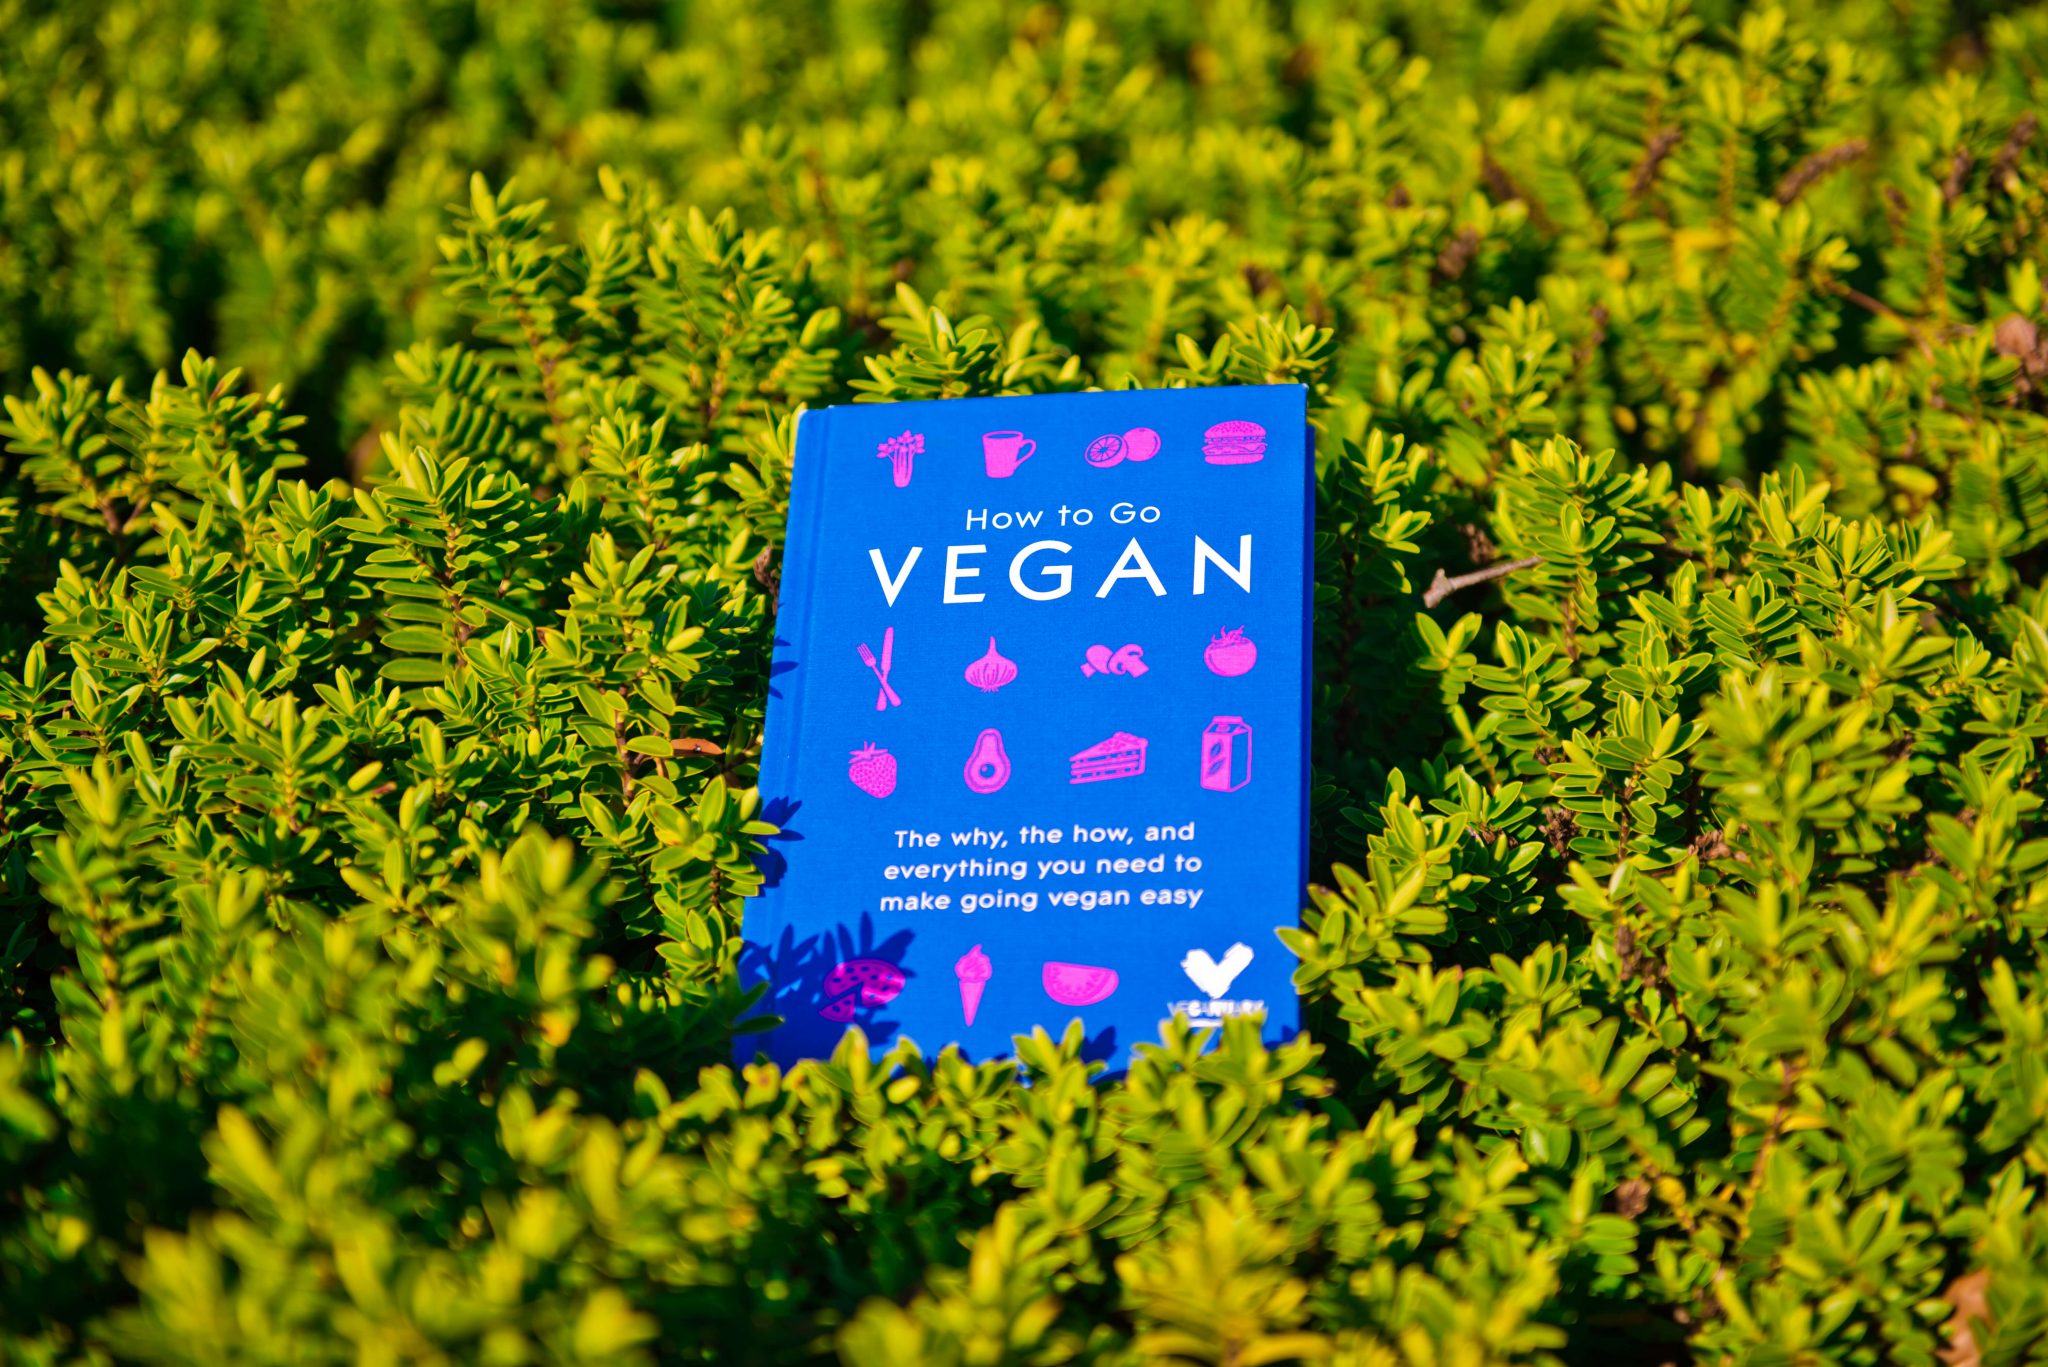 Veganuary-How to Go Vegan